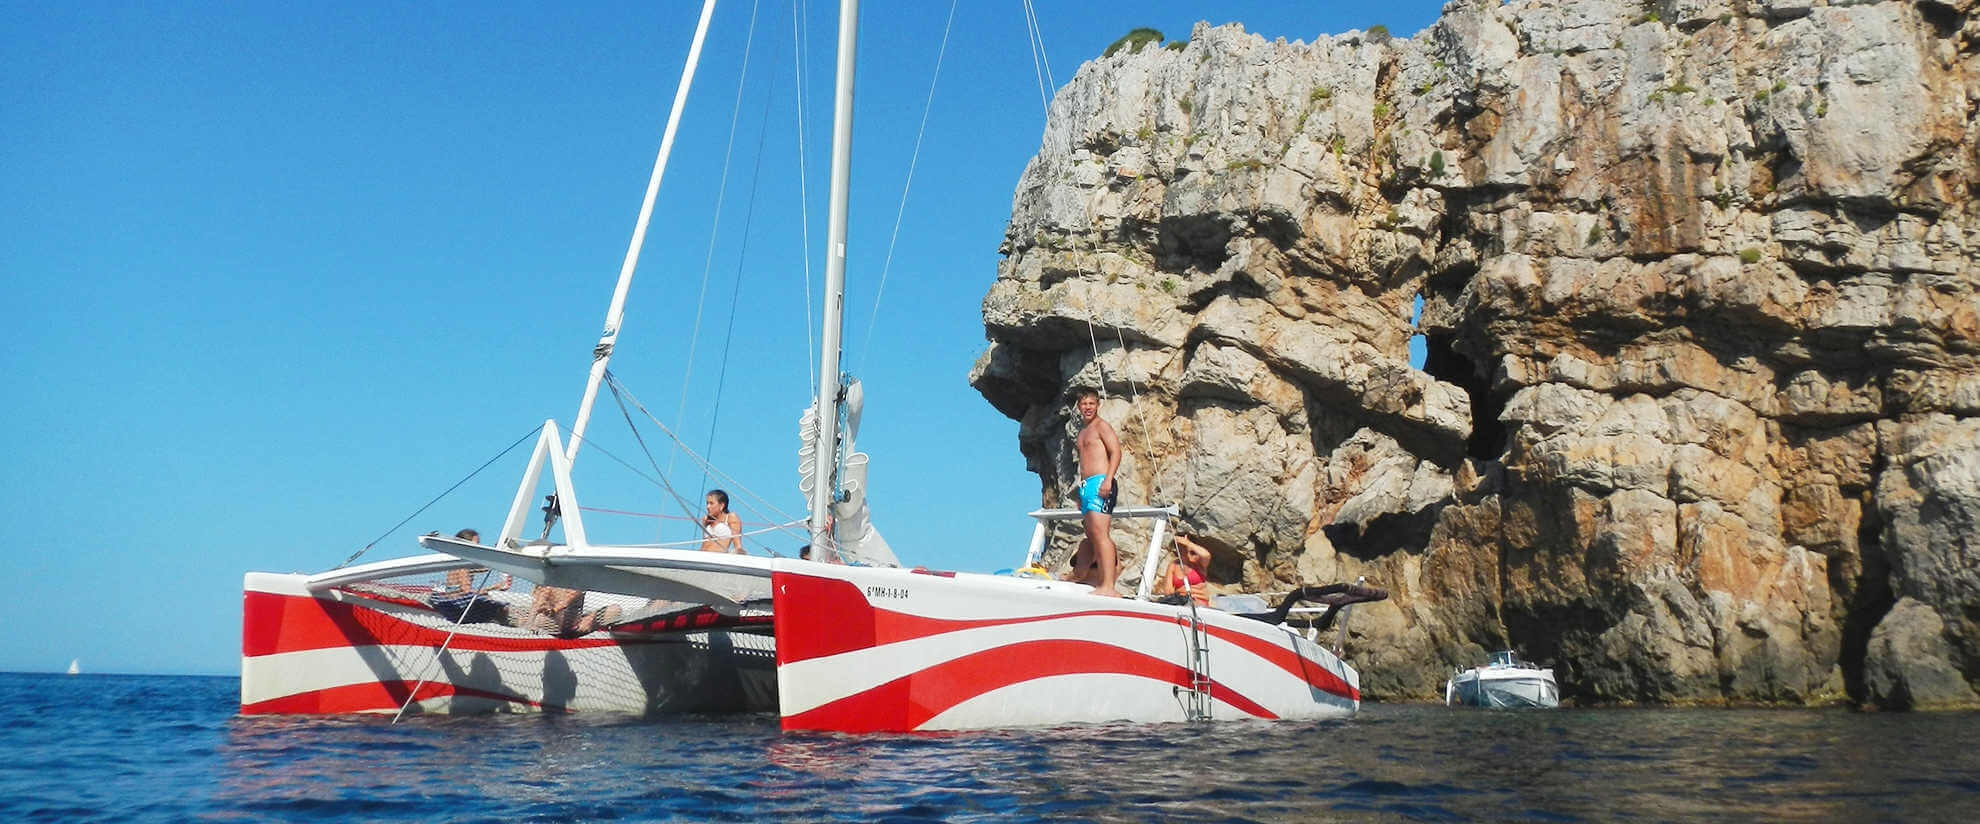 Enjoy Menorca by catamaran